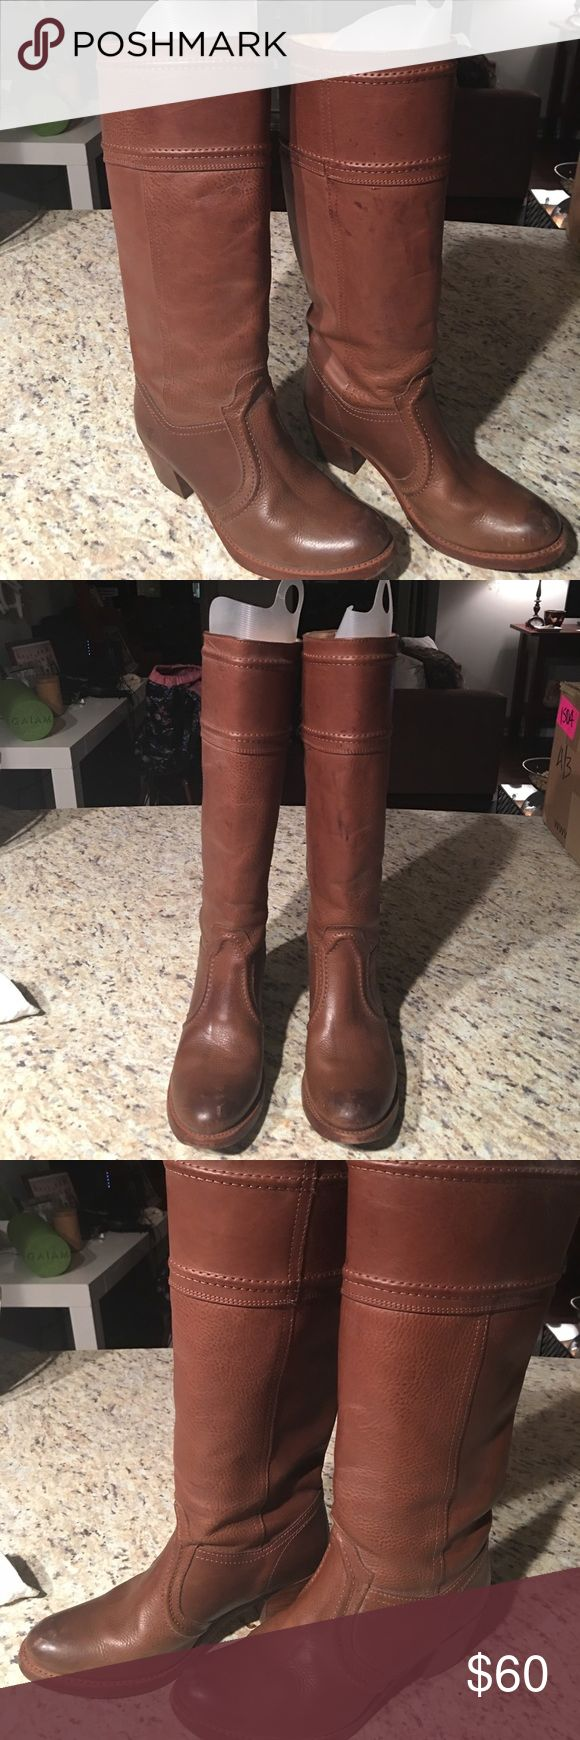 Frye Tall Boots in Light Brown Color Sz: 8 I'm doing a major closet clean out!   DETAILS - These are such cute Fyre boots. I've worn them a few times and then started a job that was business casual. They are perfect for spring and fall!   MATERIALS - Leather  WEAR - There is a little wear around one of the heels but other than that they are almost new.   **My items are priced to sell. These photos DO NOT have a filter, they are original!** Frye Shoes Heeled Boots